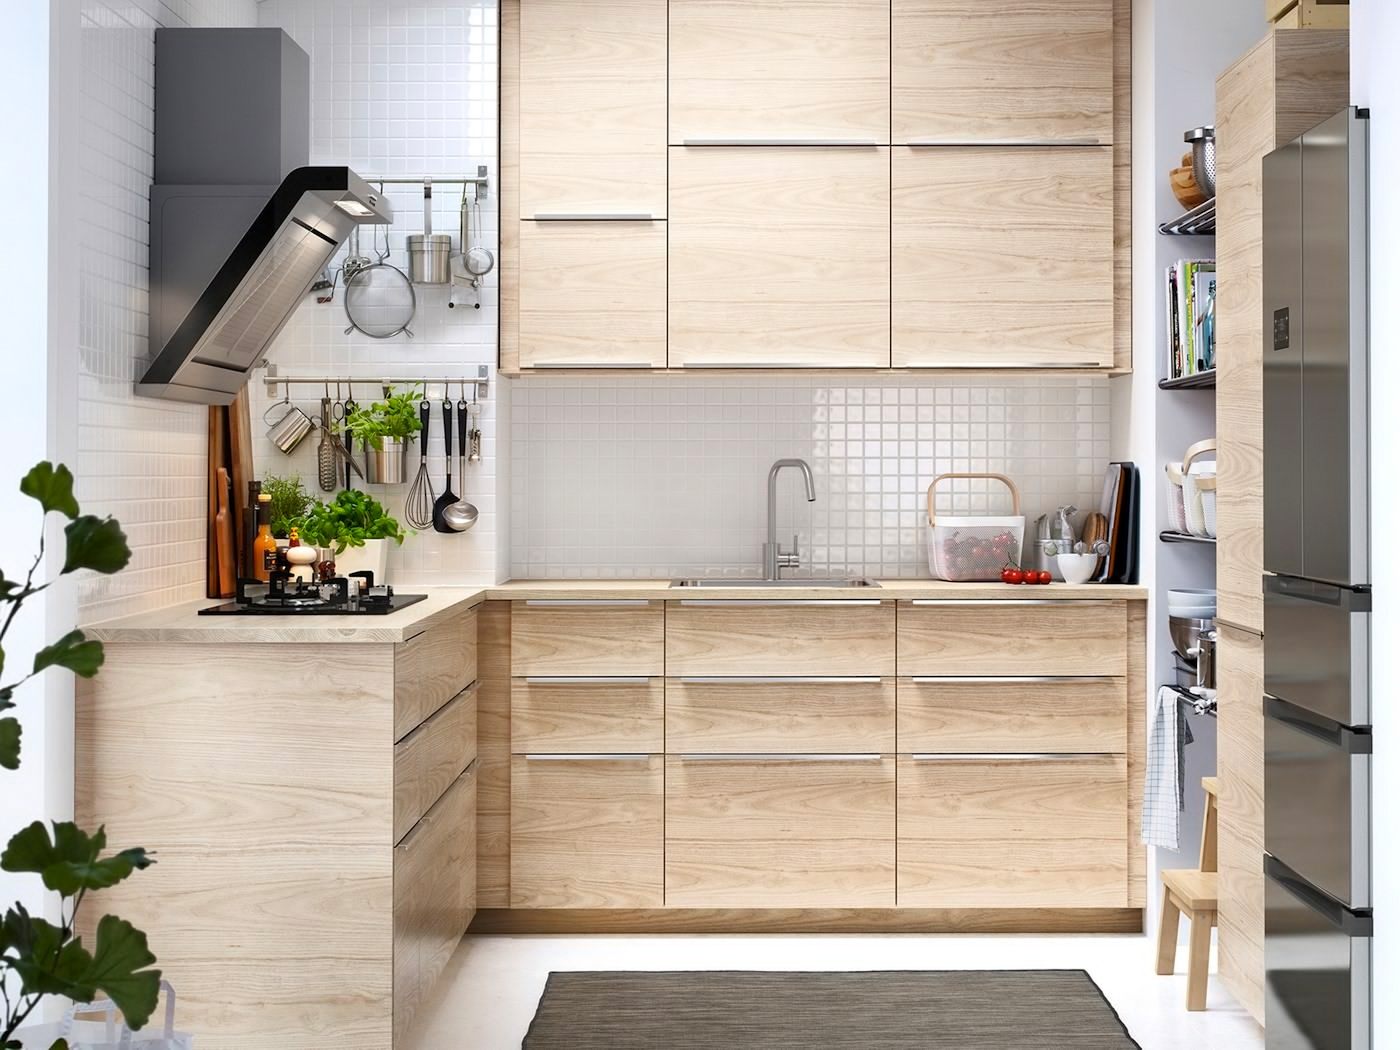 Kitchen Design - Kitchen Planner - IKEA